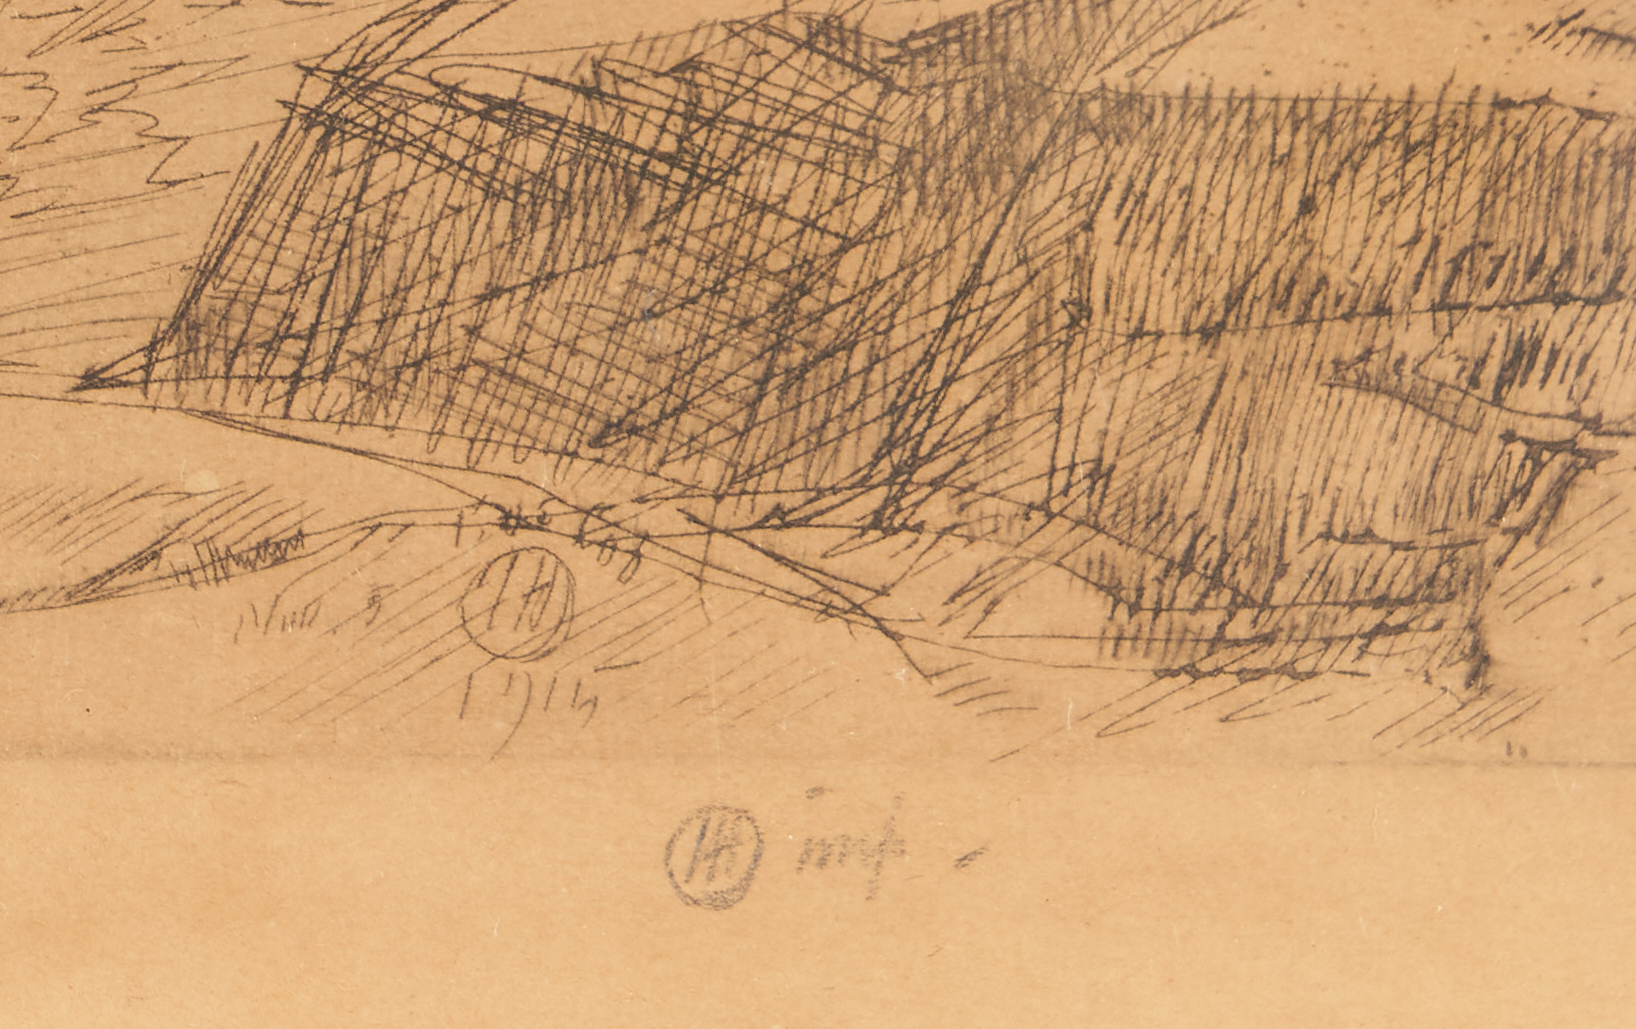 Lot 139: Pencil Signed Childe Hassam Etching, Old Lace